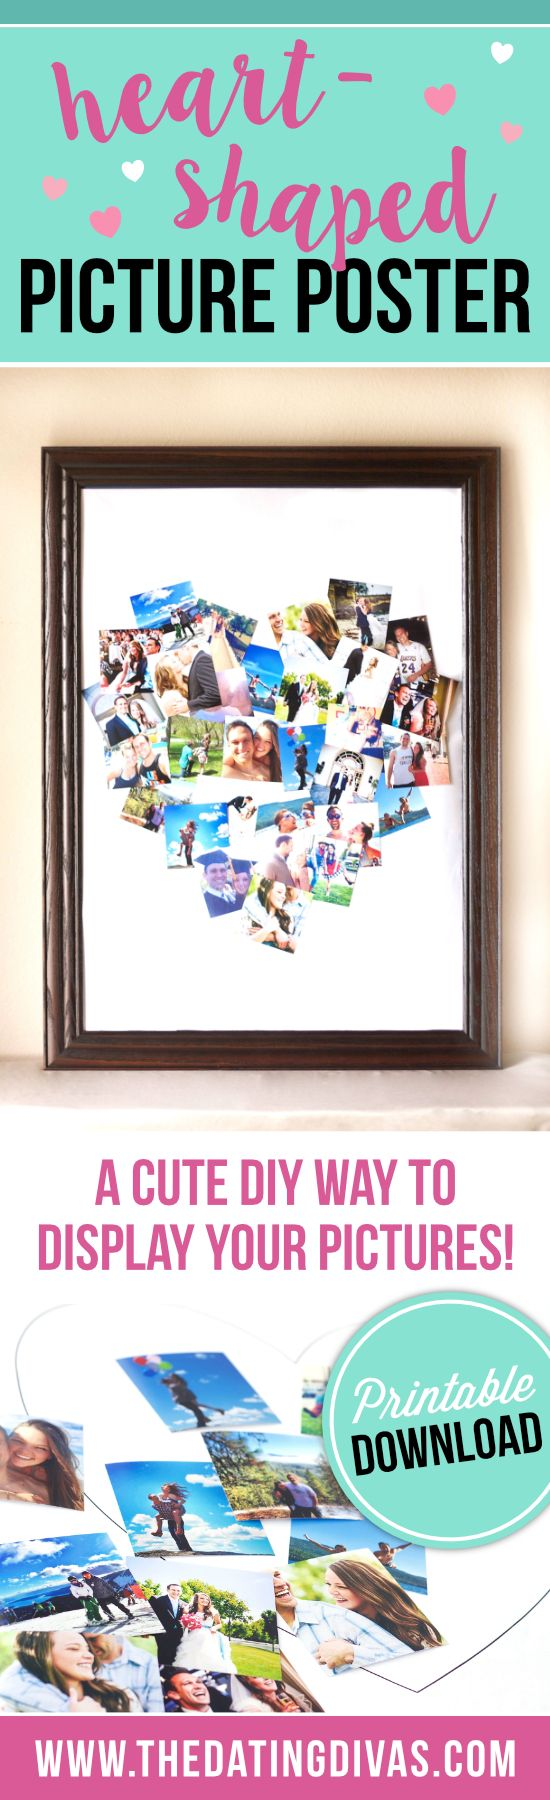 Heartshaped Picture Poster